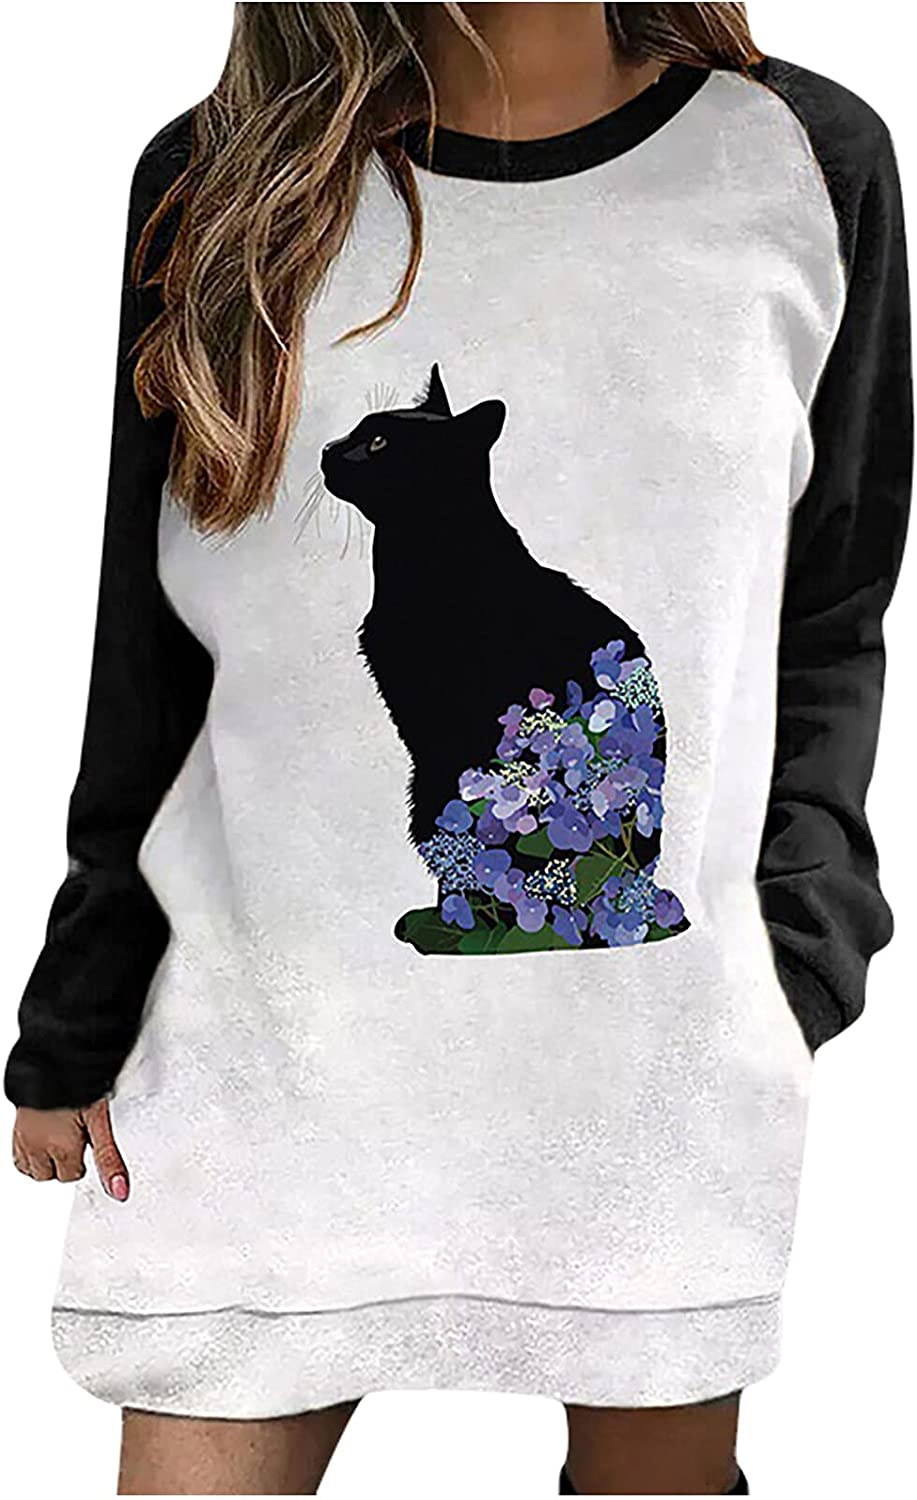 Shirts for Women Graphic T-Shirts Loose Fit Tops Long Sleeve Colorblock Pullover Simple Blouse Fall Casual Sweatshirt